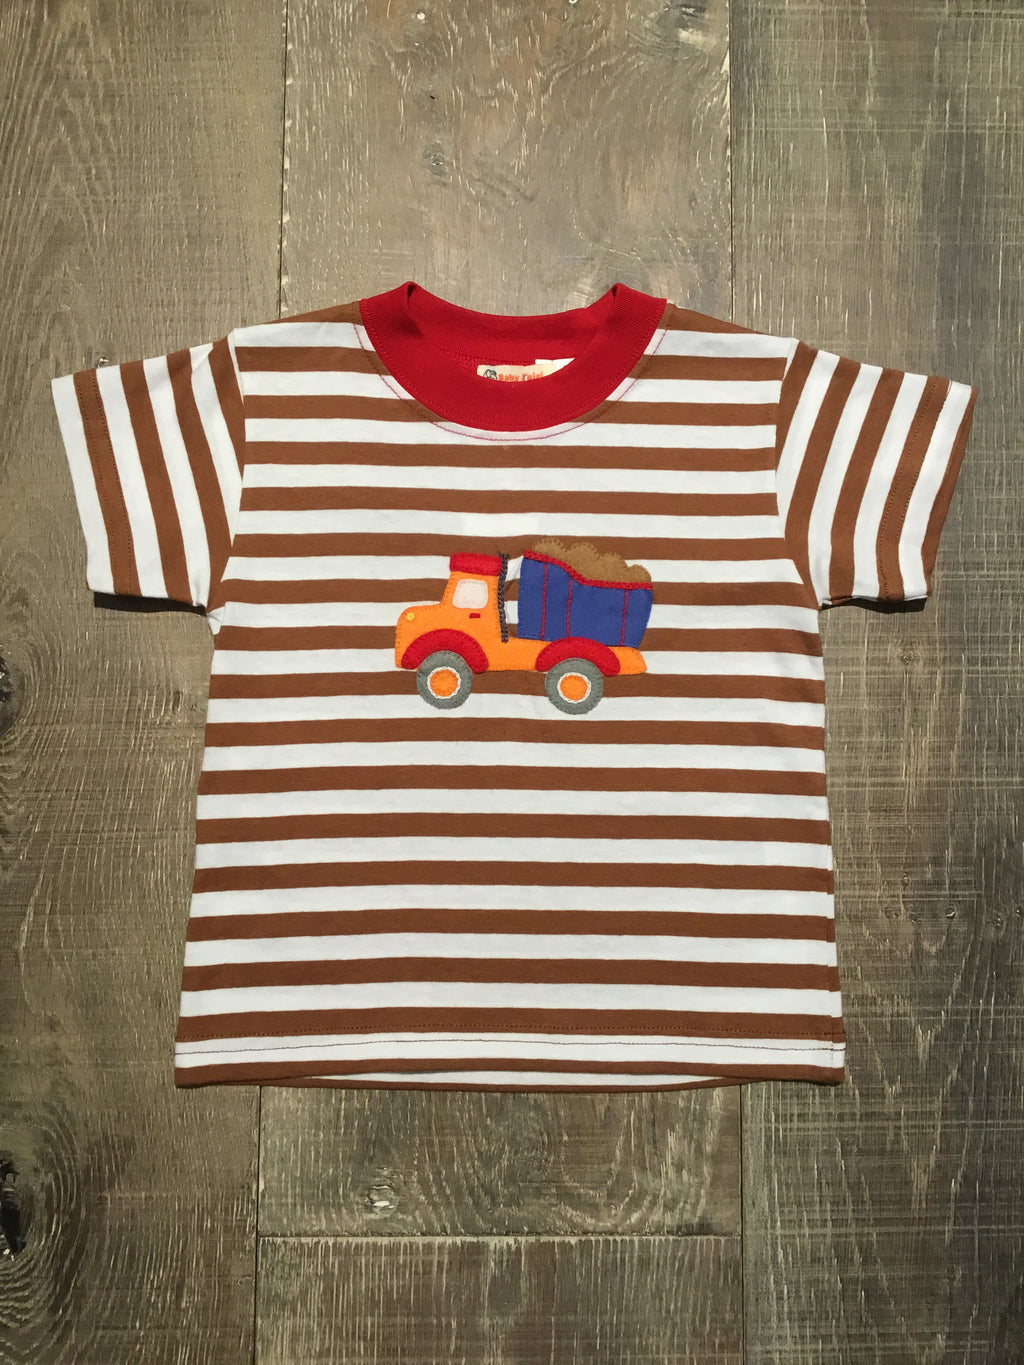 Dump Truck Short Sleeve Shirt